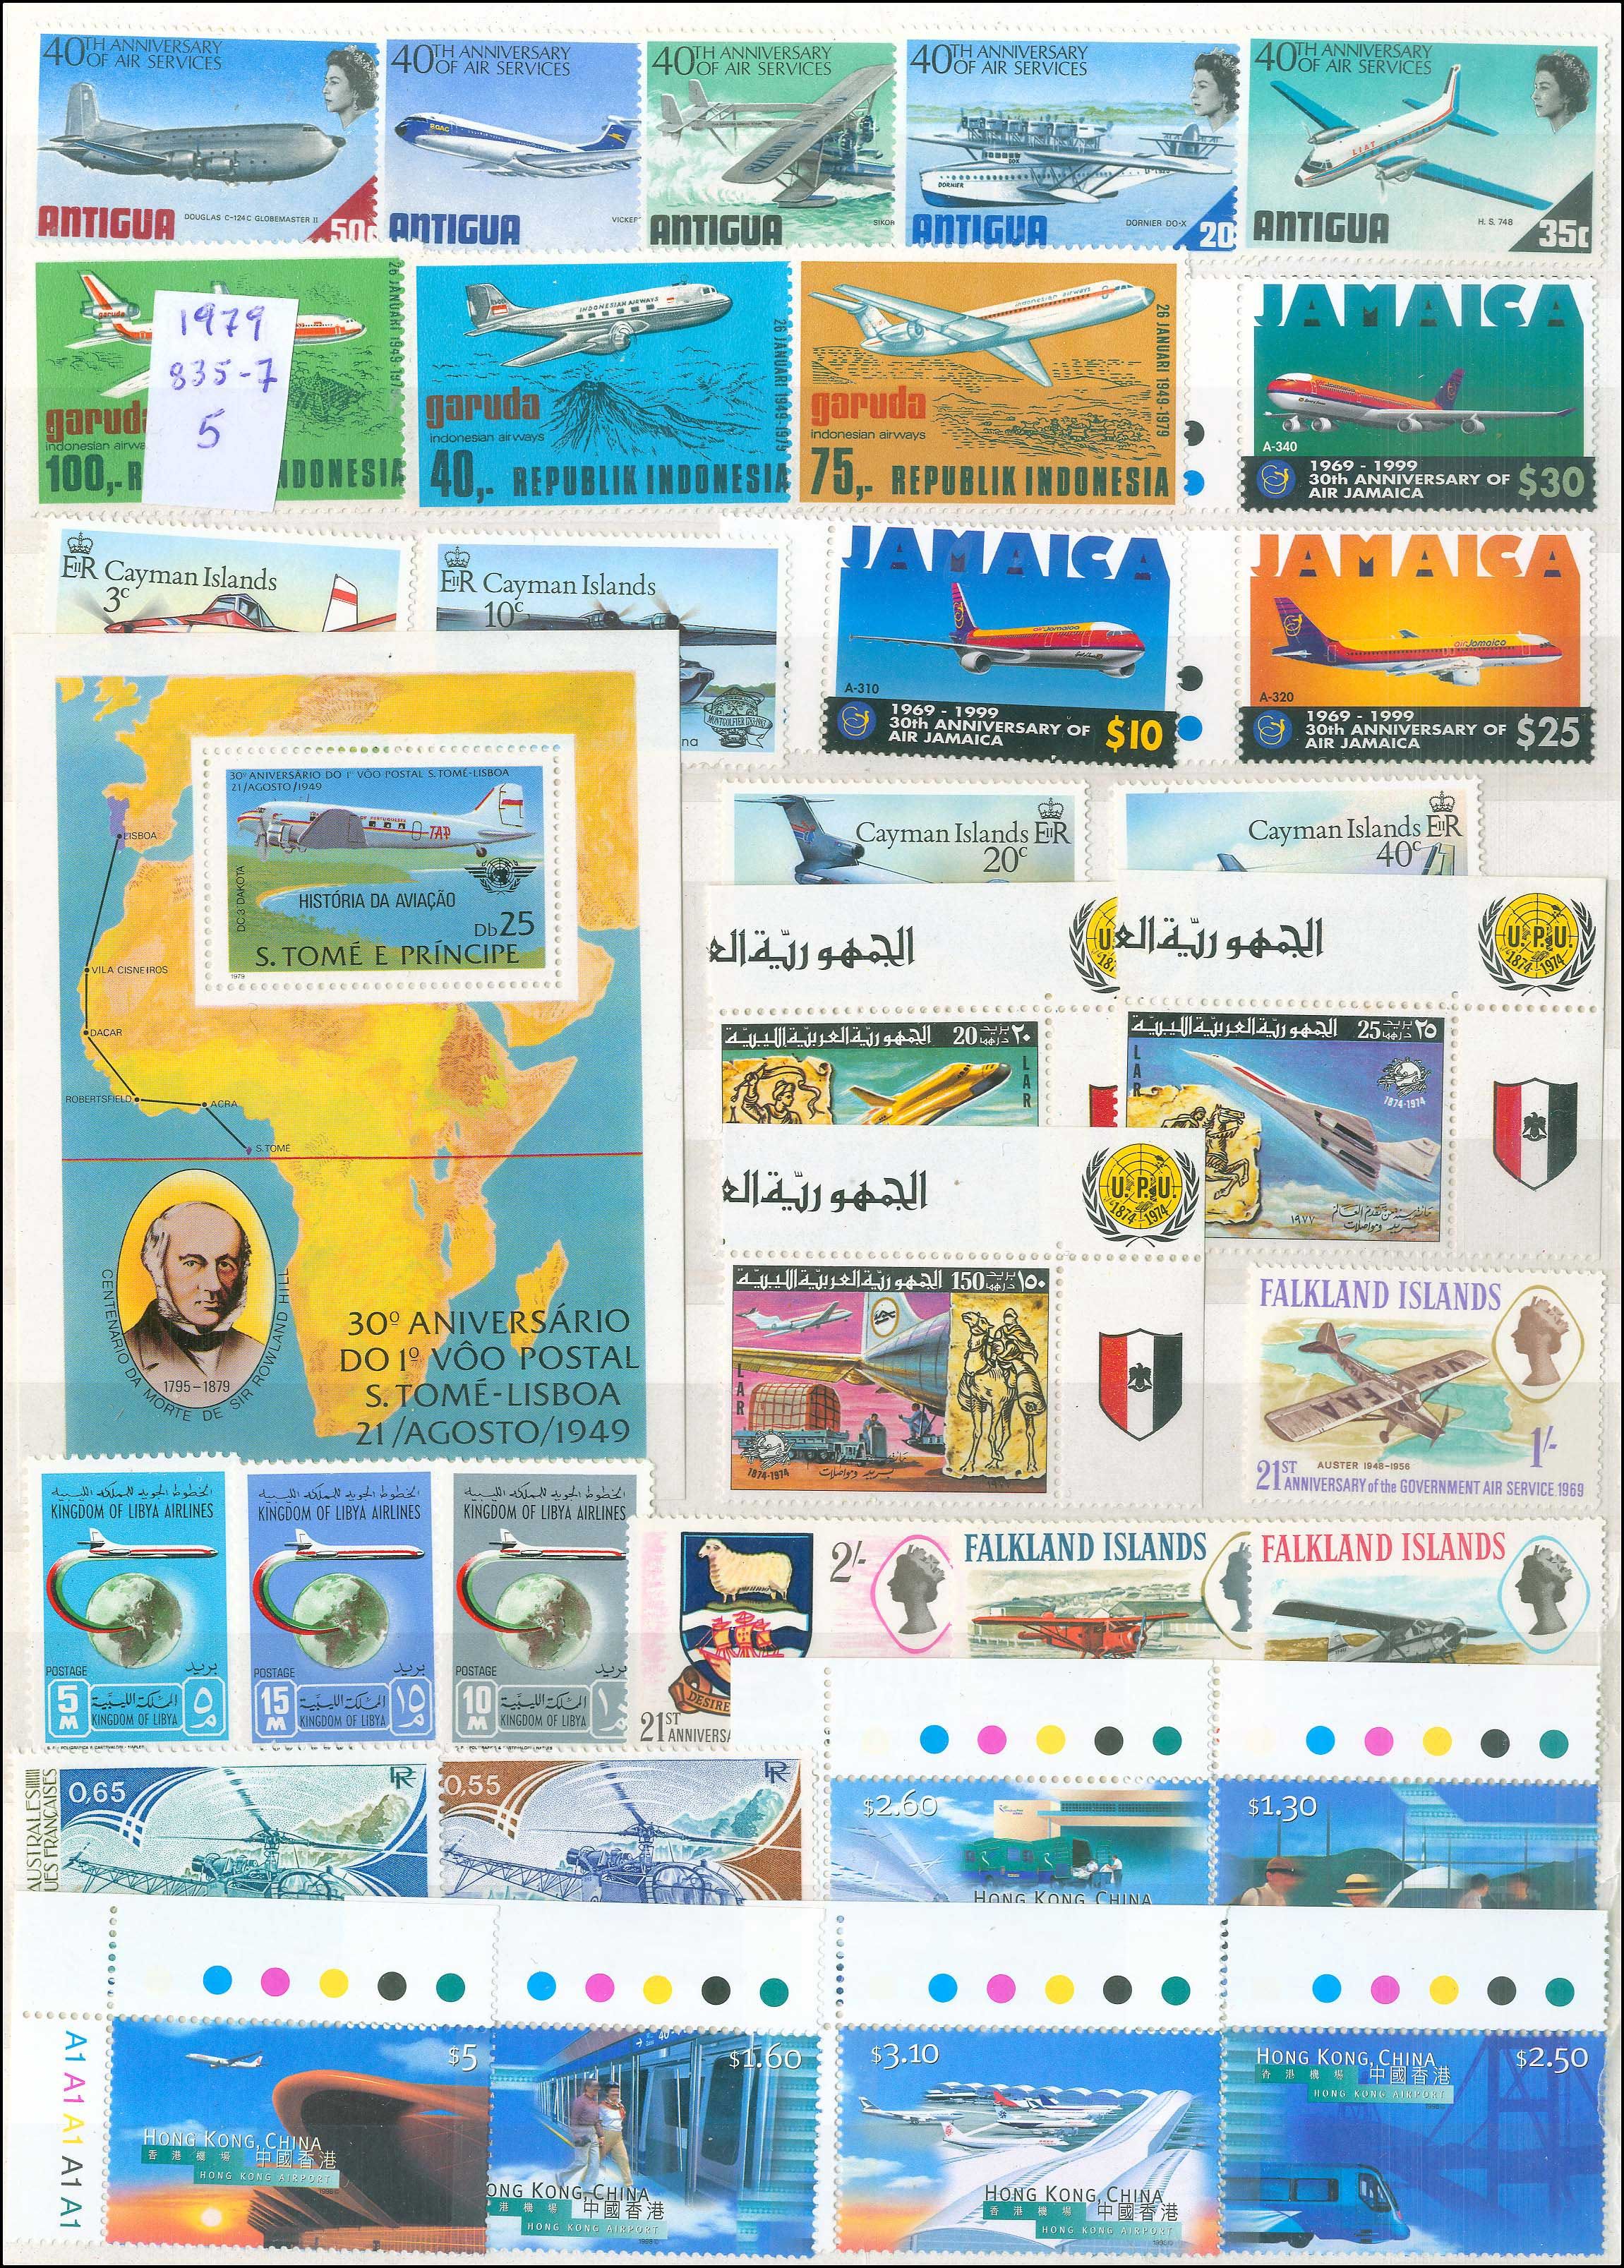 Lot 987 - -  THEMATIC (TOPICAL) PHILATELY Thematic (topical) philately -  A. Karamitsos Public Auction 668 General Philatelic Auction